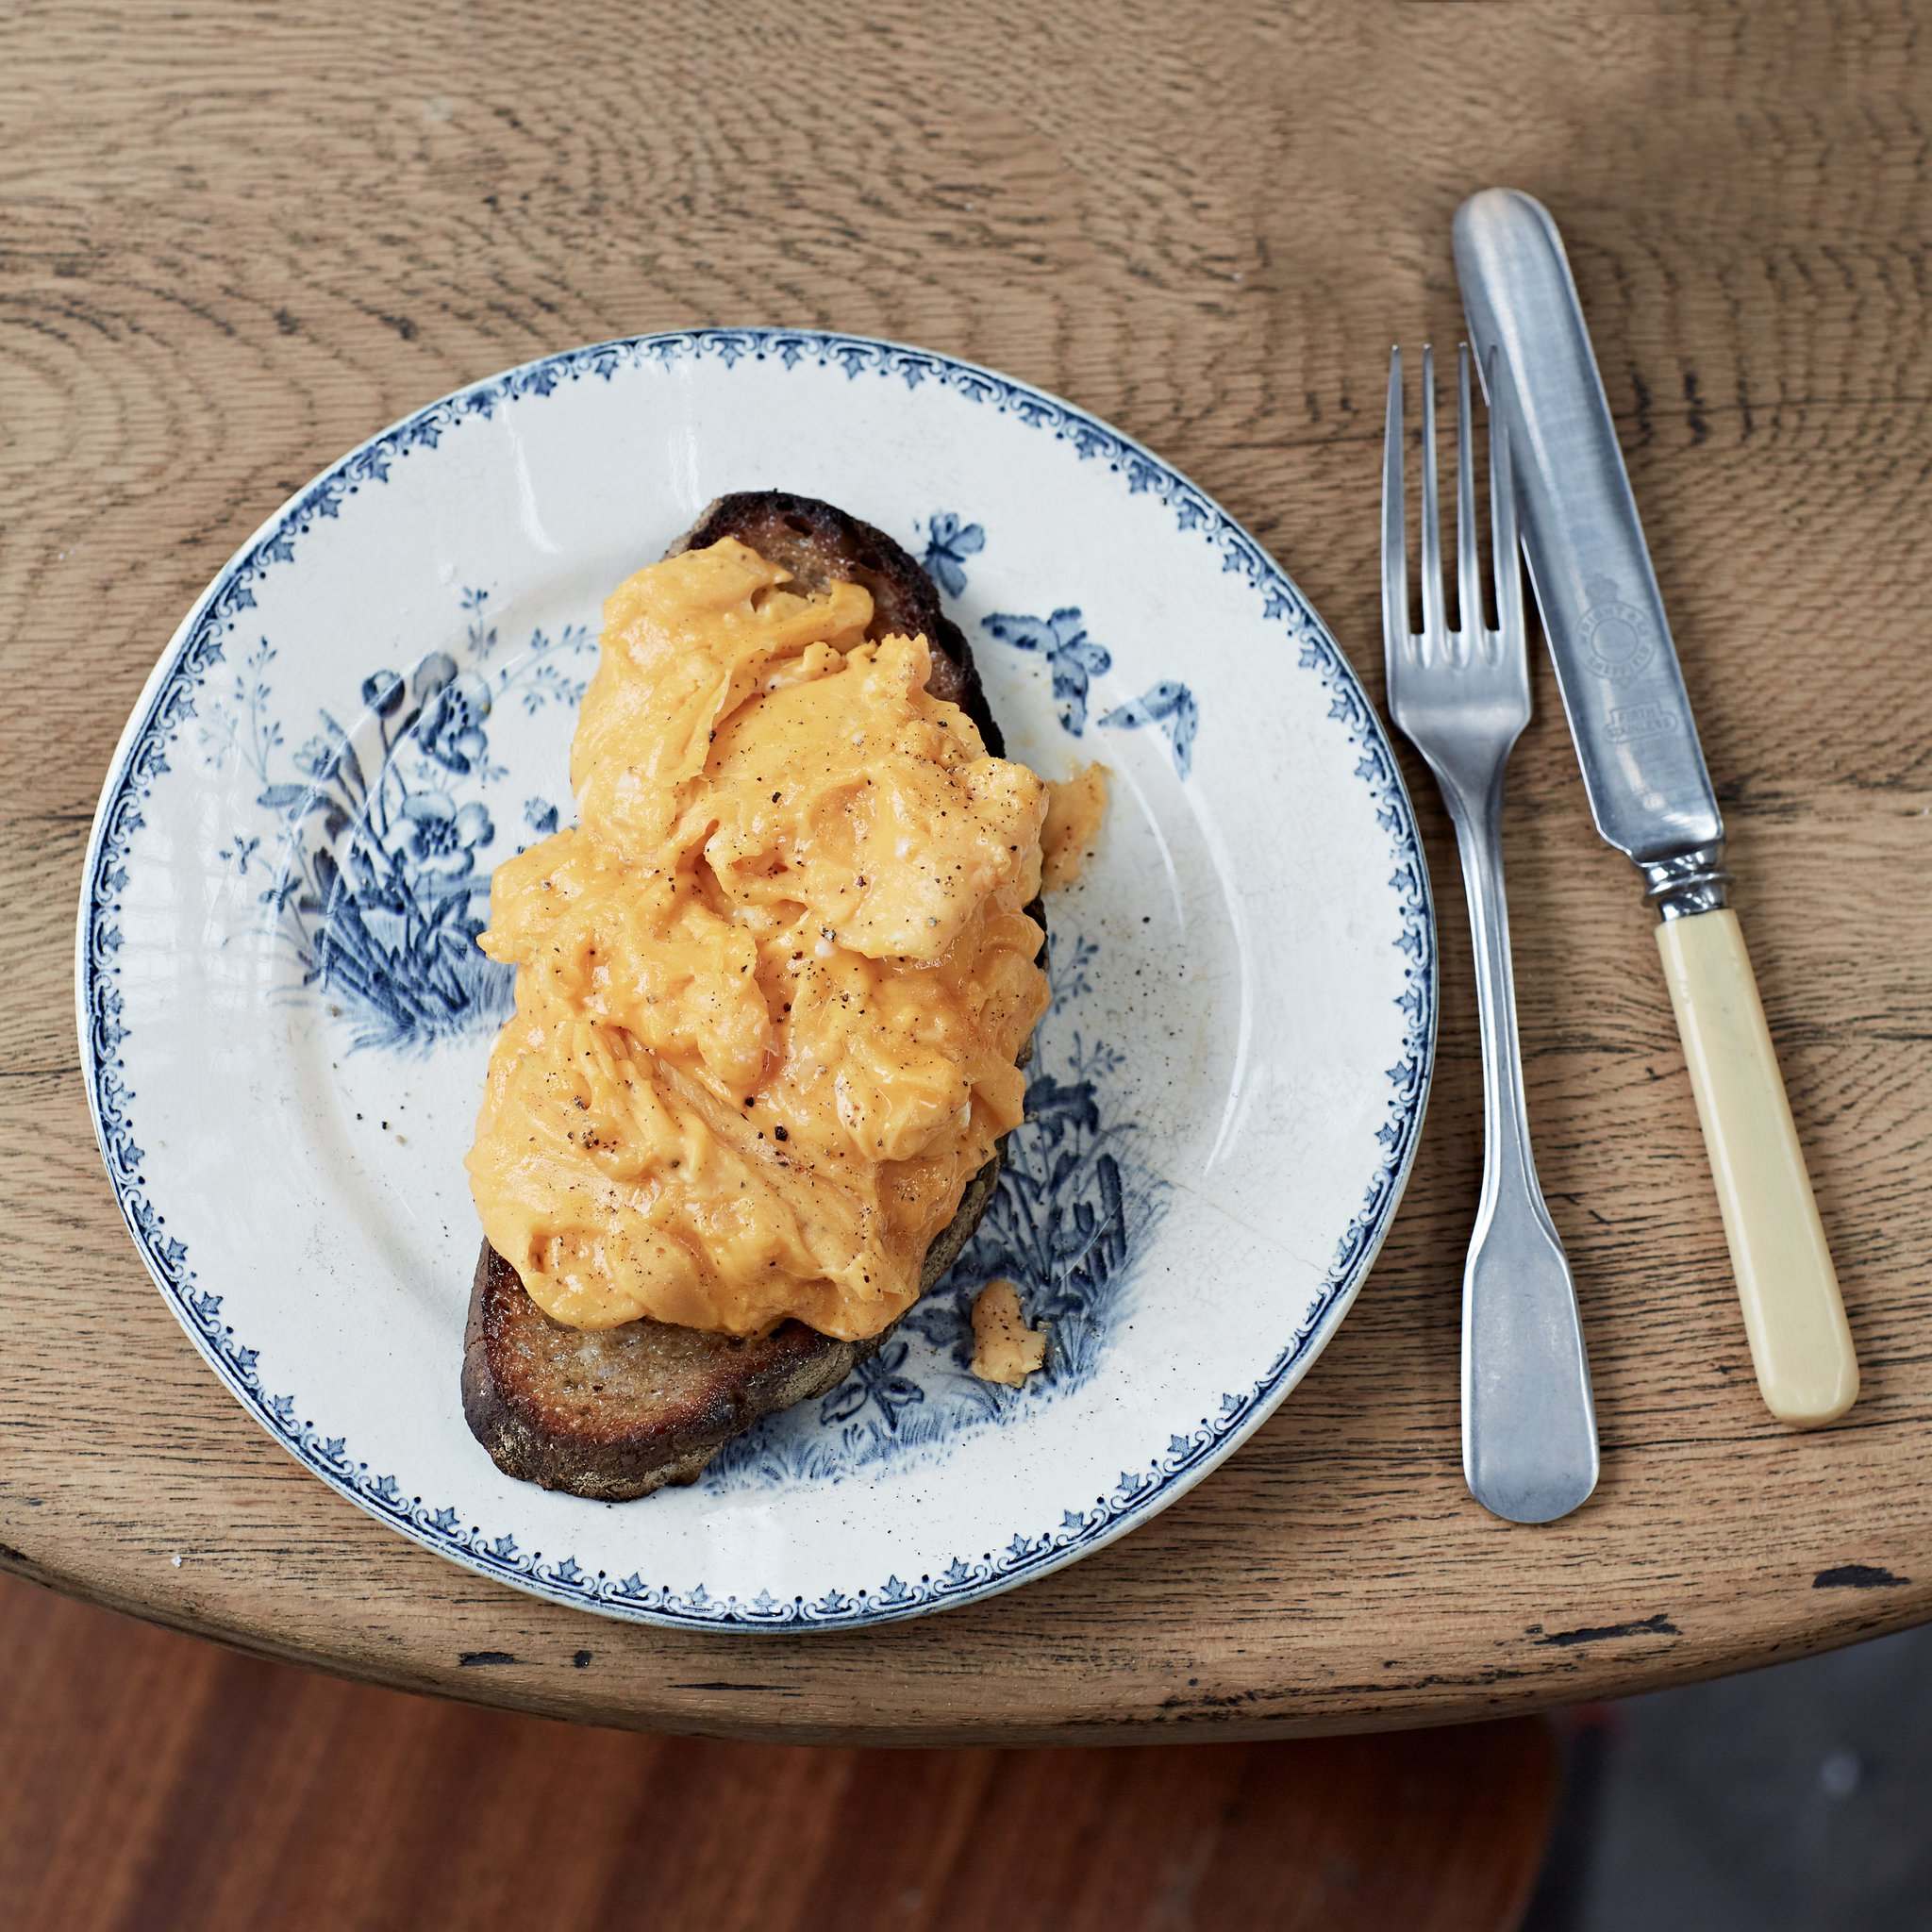 For those of you asking about scrambled eggs - we've got your back! https://t.co/1opgz4UOTW https://t.co/xMtcX2cwNe